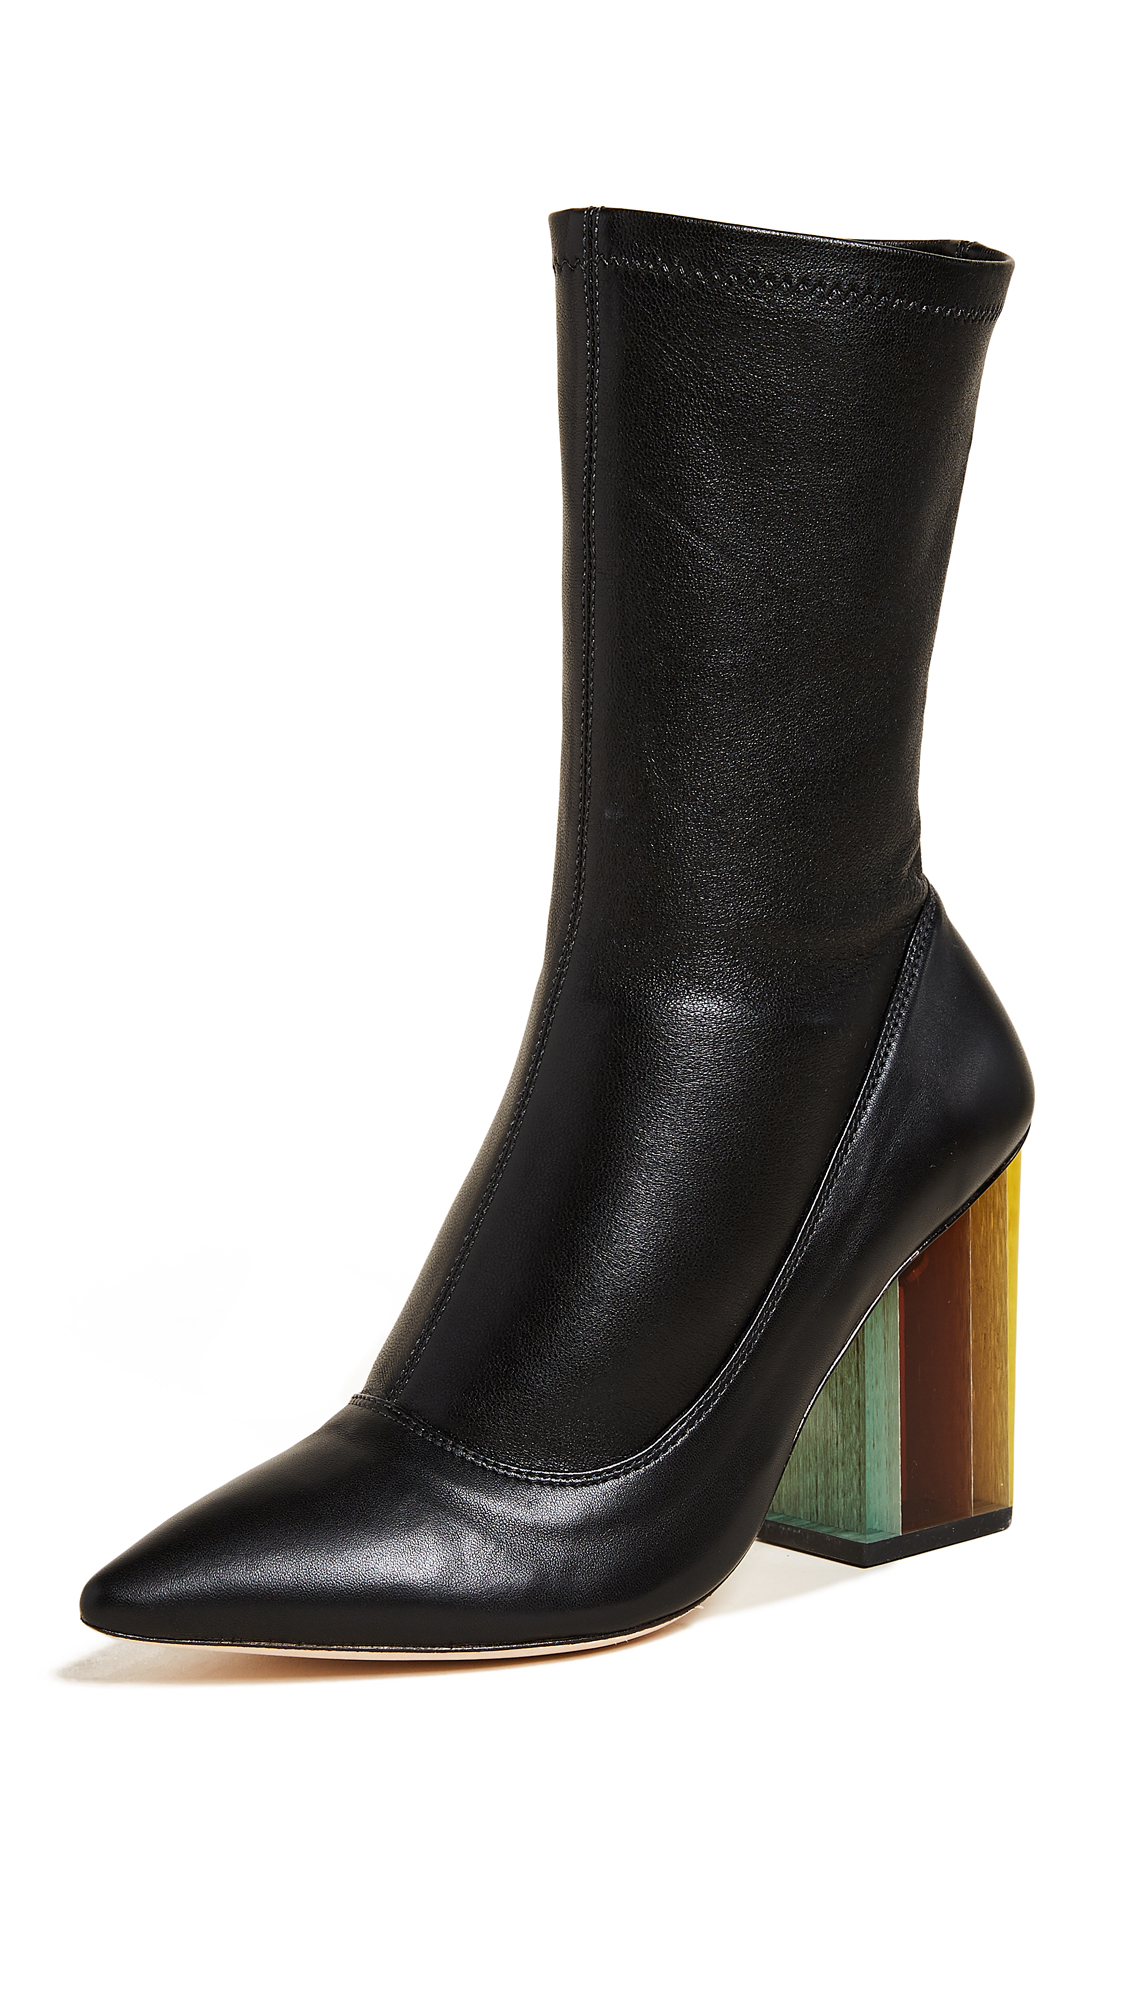 Zimmermann Stretch Ankle Boots - Black